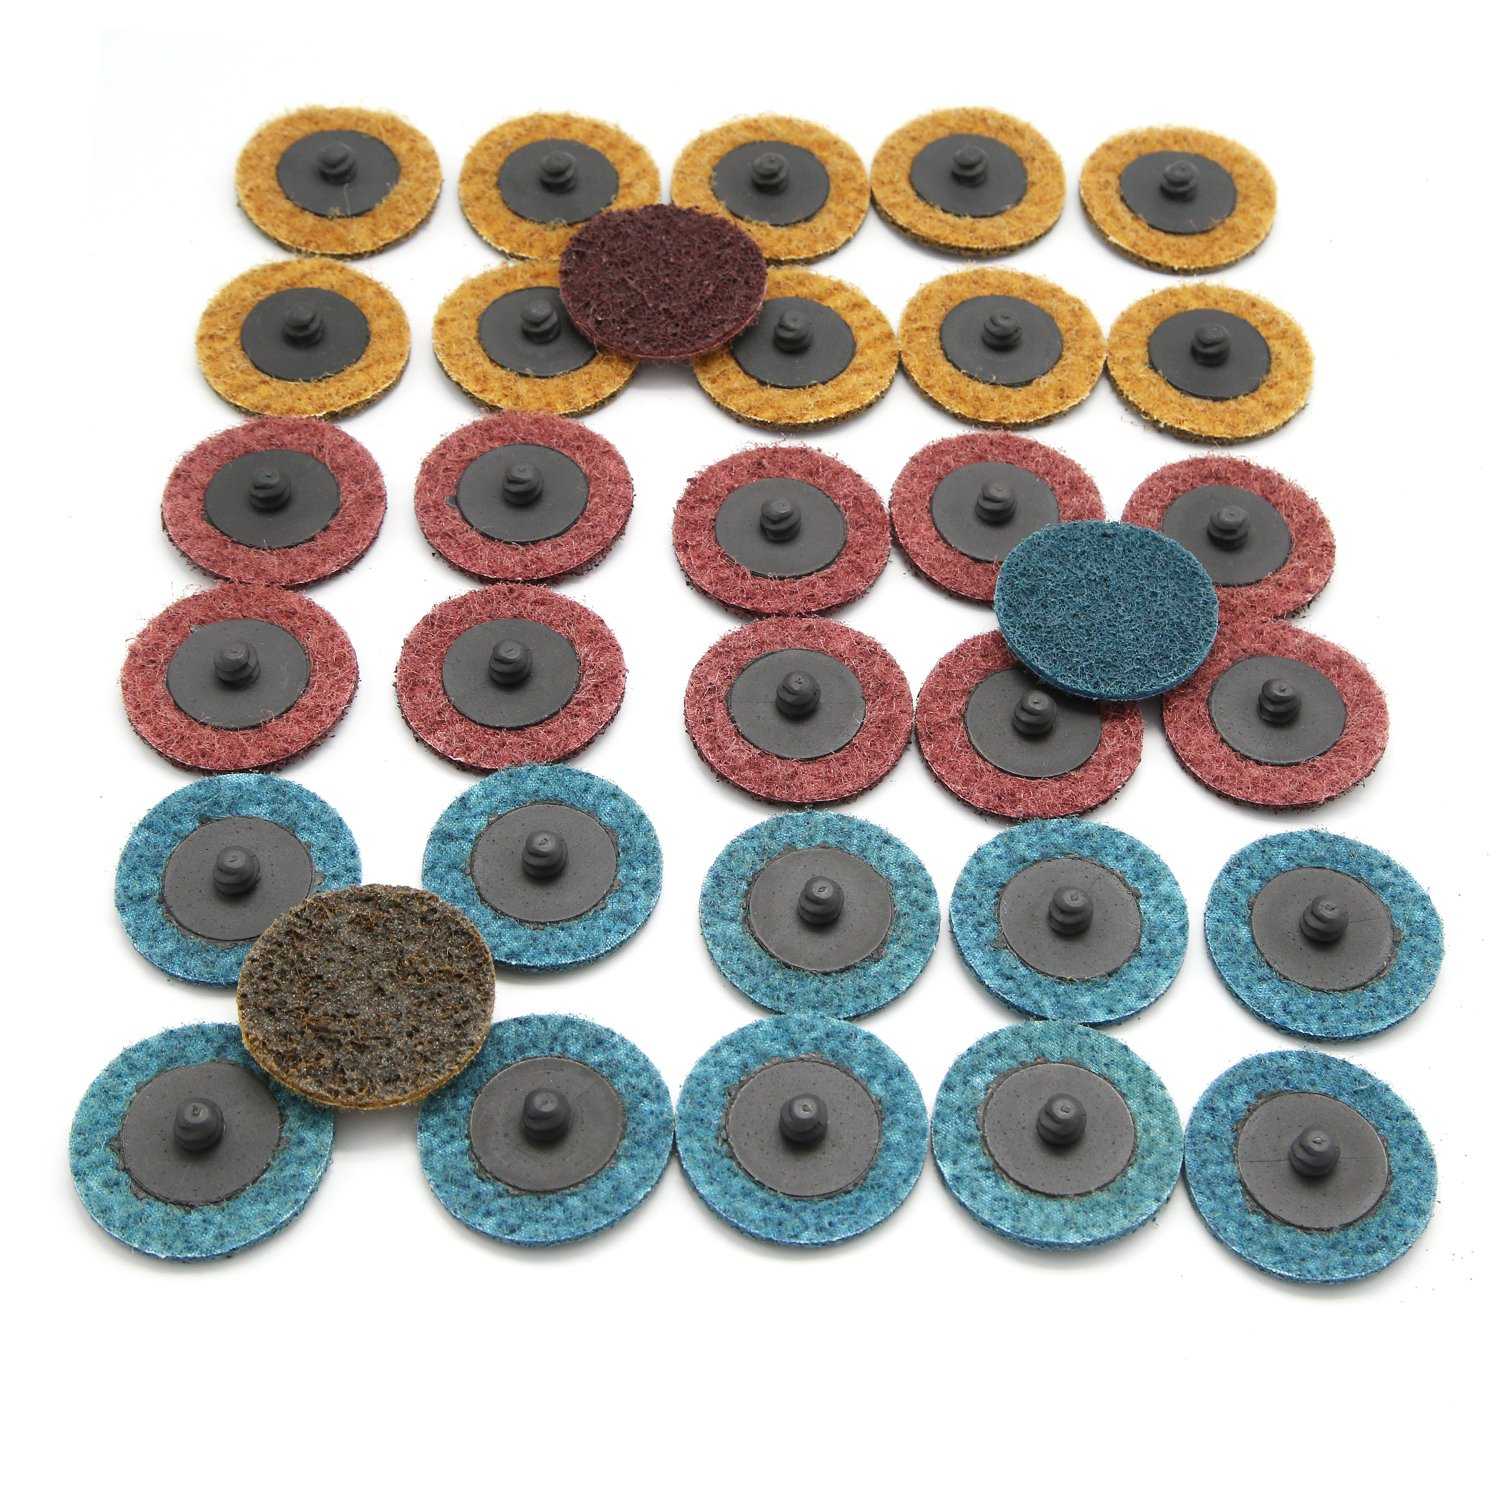 Tougs 33 PCS 2 Inch Quick Change Discs Surface Conditioning Discs, Mix Roll Lock Sanding, Resin Fibre Disc R-Type, Fine Medium Coarse Pads - Max Speed 20,000Rpm